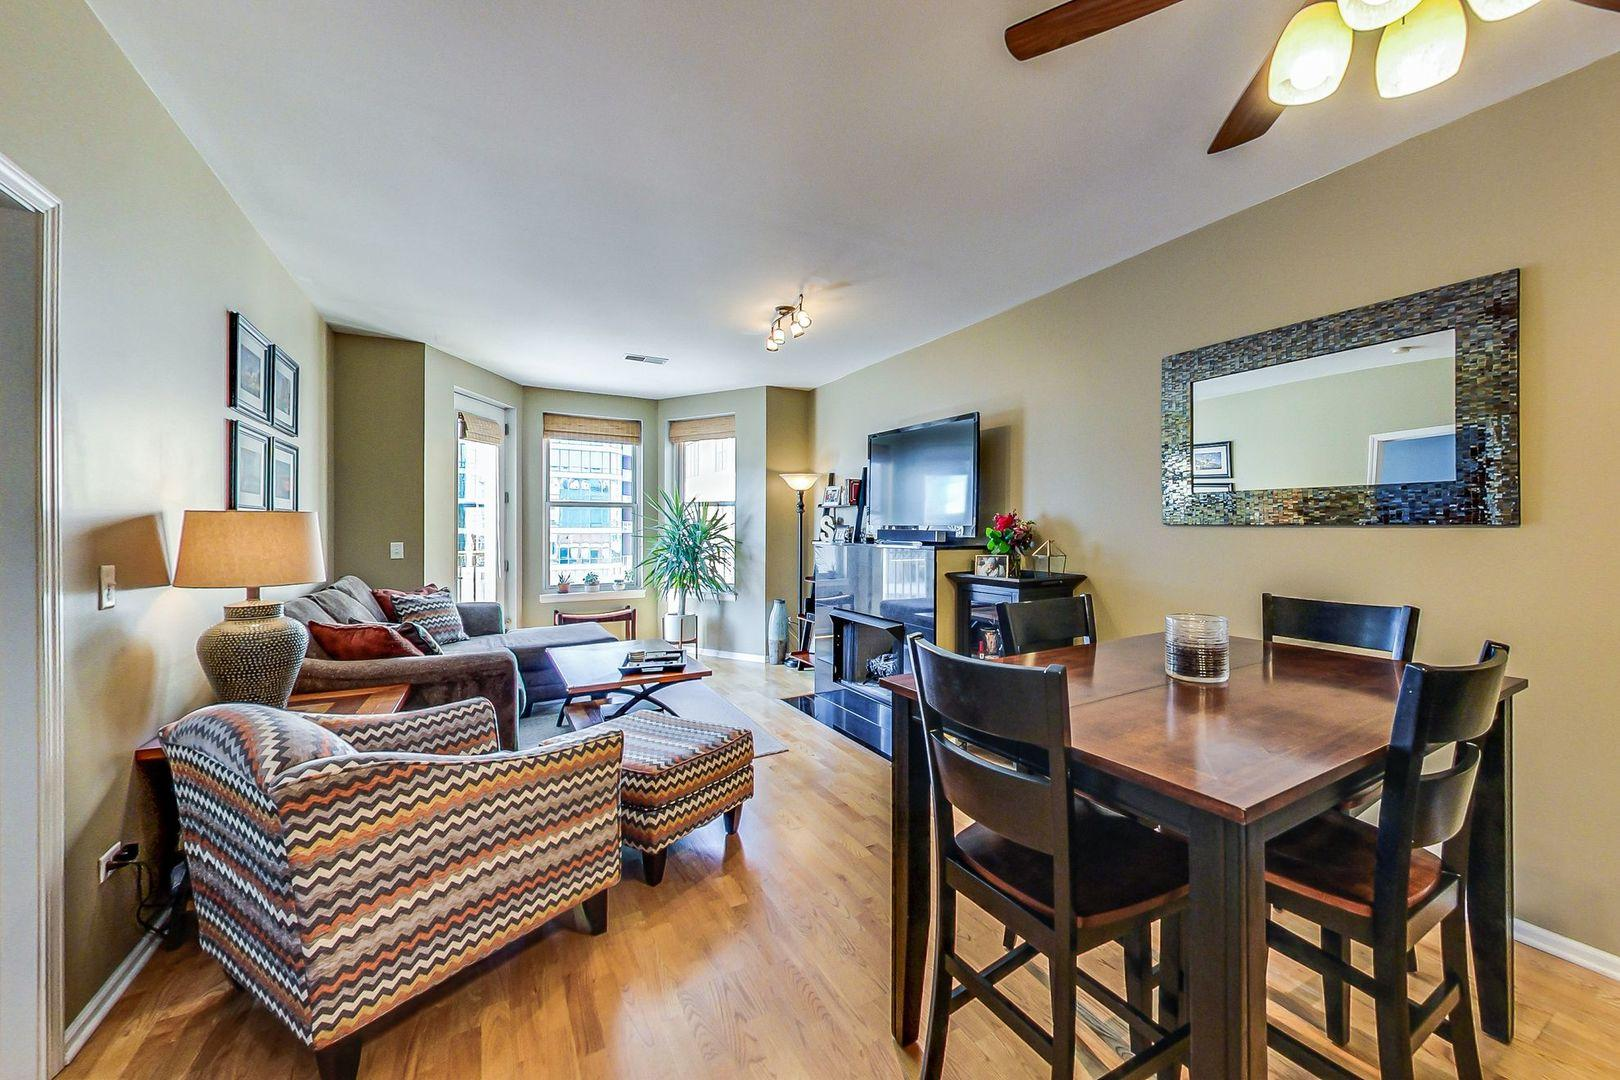 520 N Halsted St, #505 photo